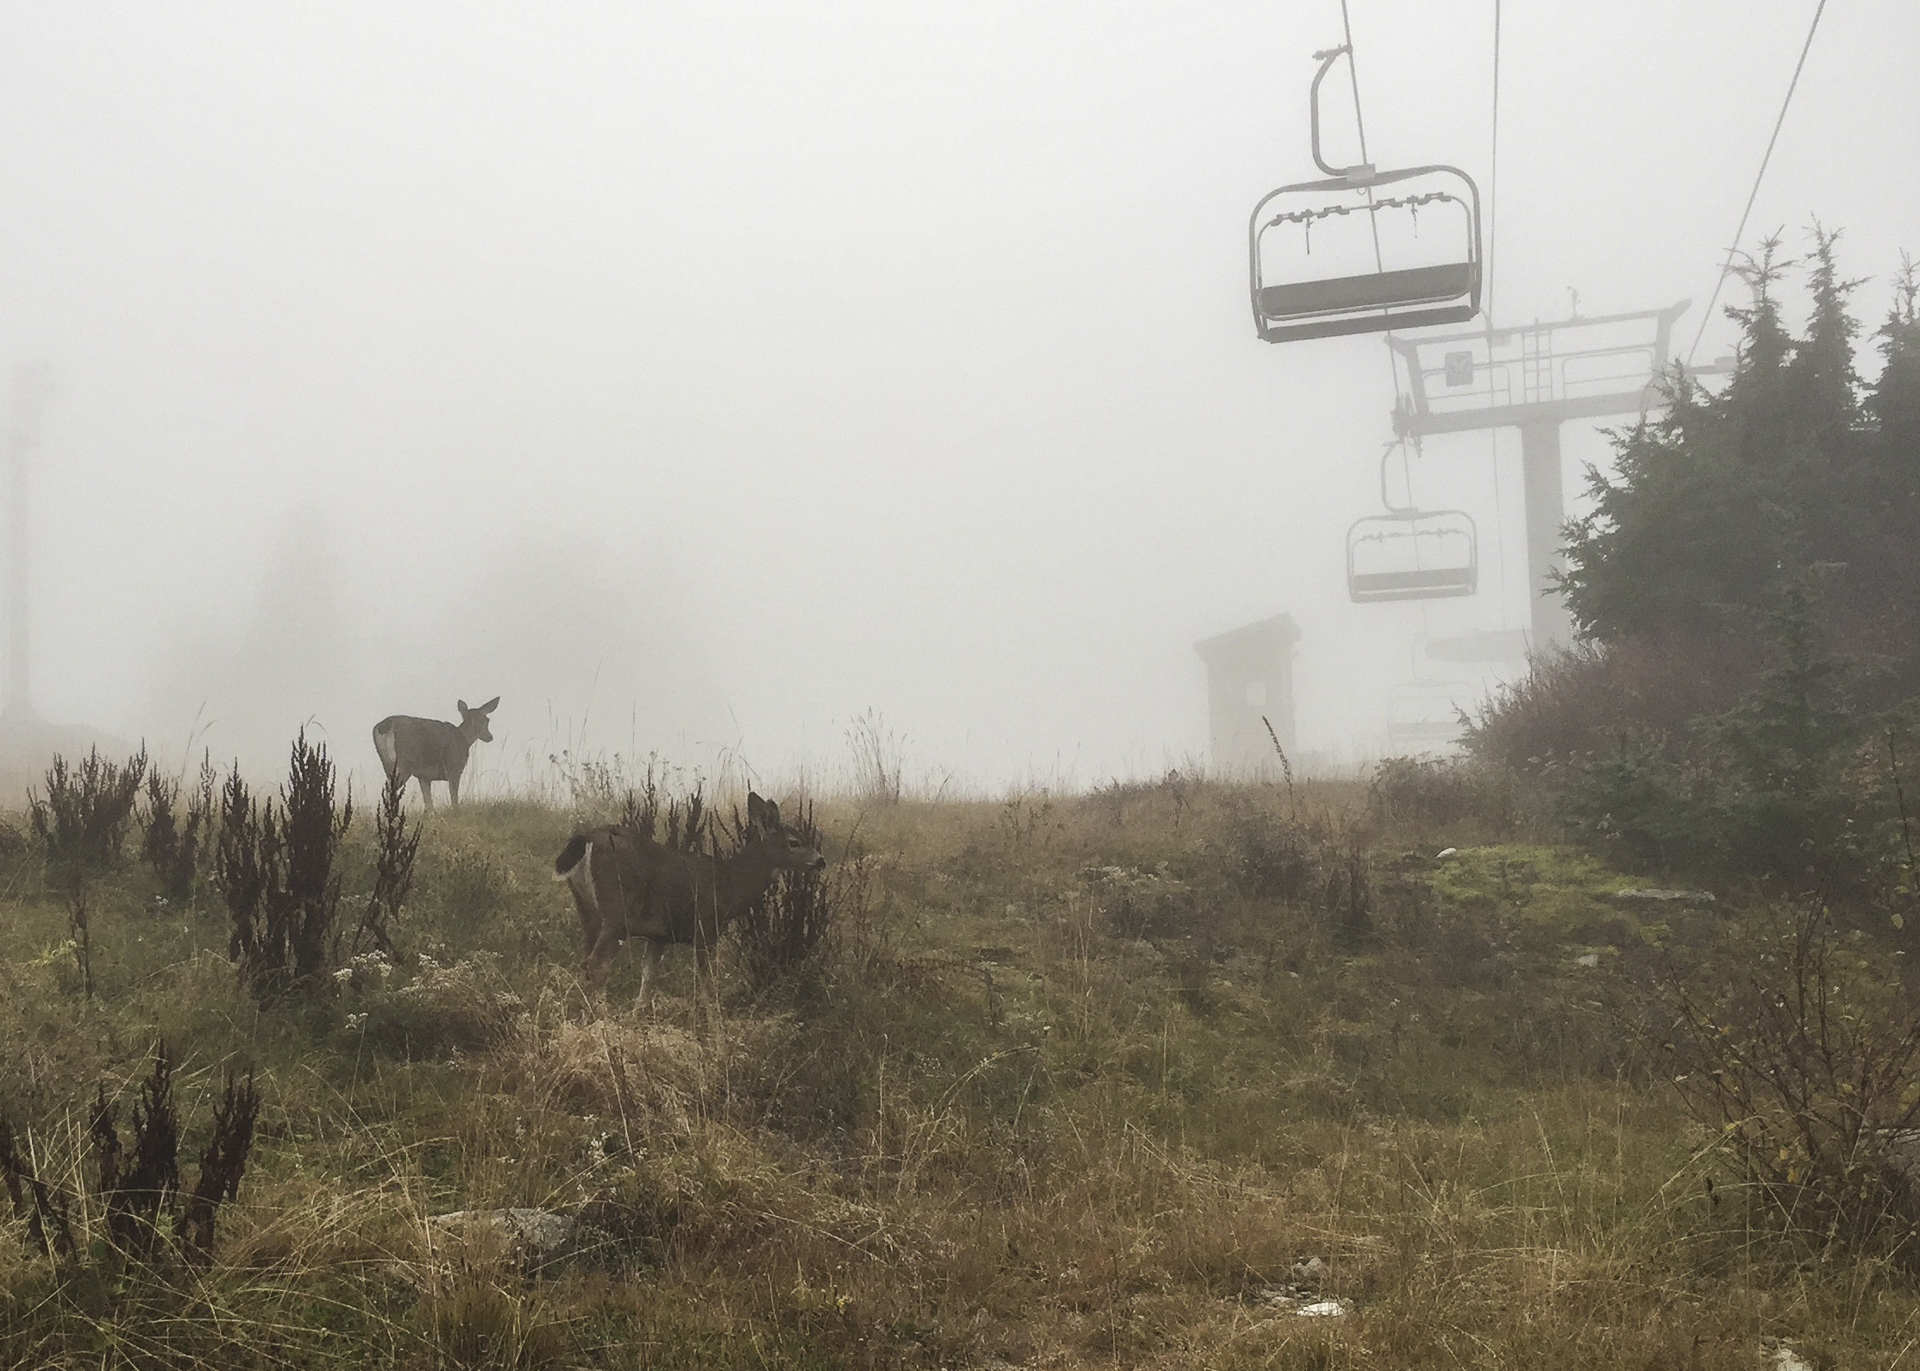 There were even some deer wandering about, not really that afraid of anyone.